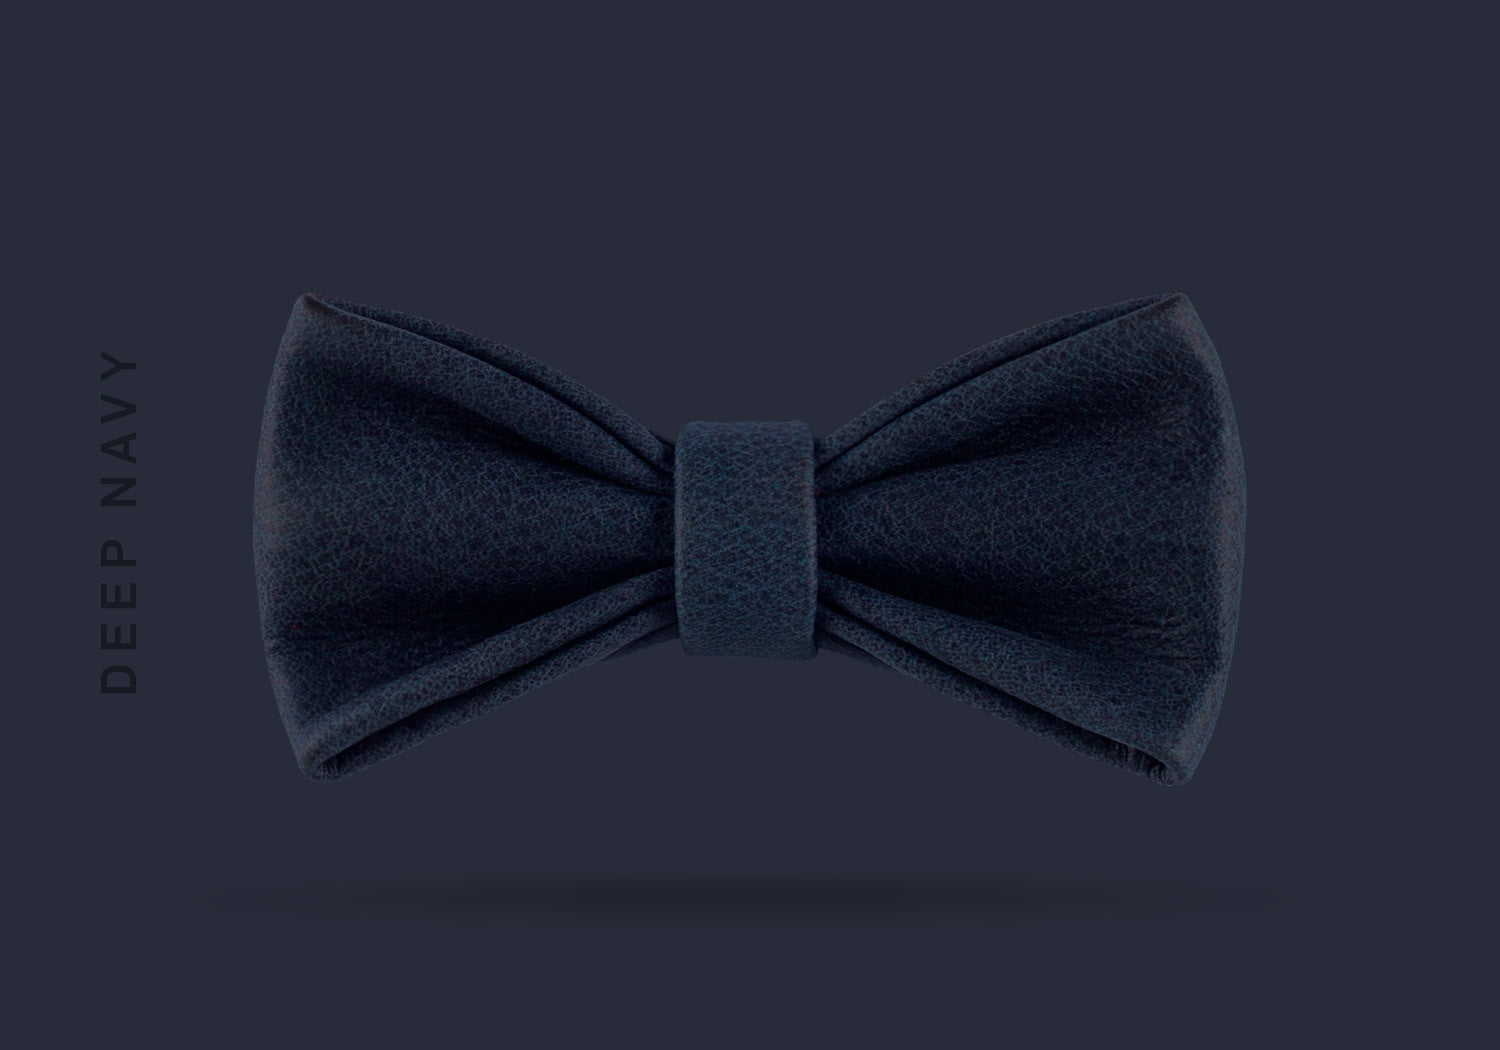 This deep navy WEEF handmade leather bow is a great present or gift idea for dapper and stylish gentlemen for fathers day, valentines day or Christmas.